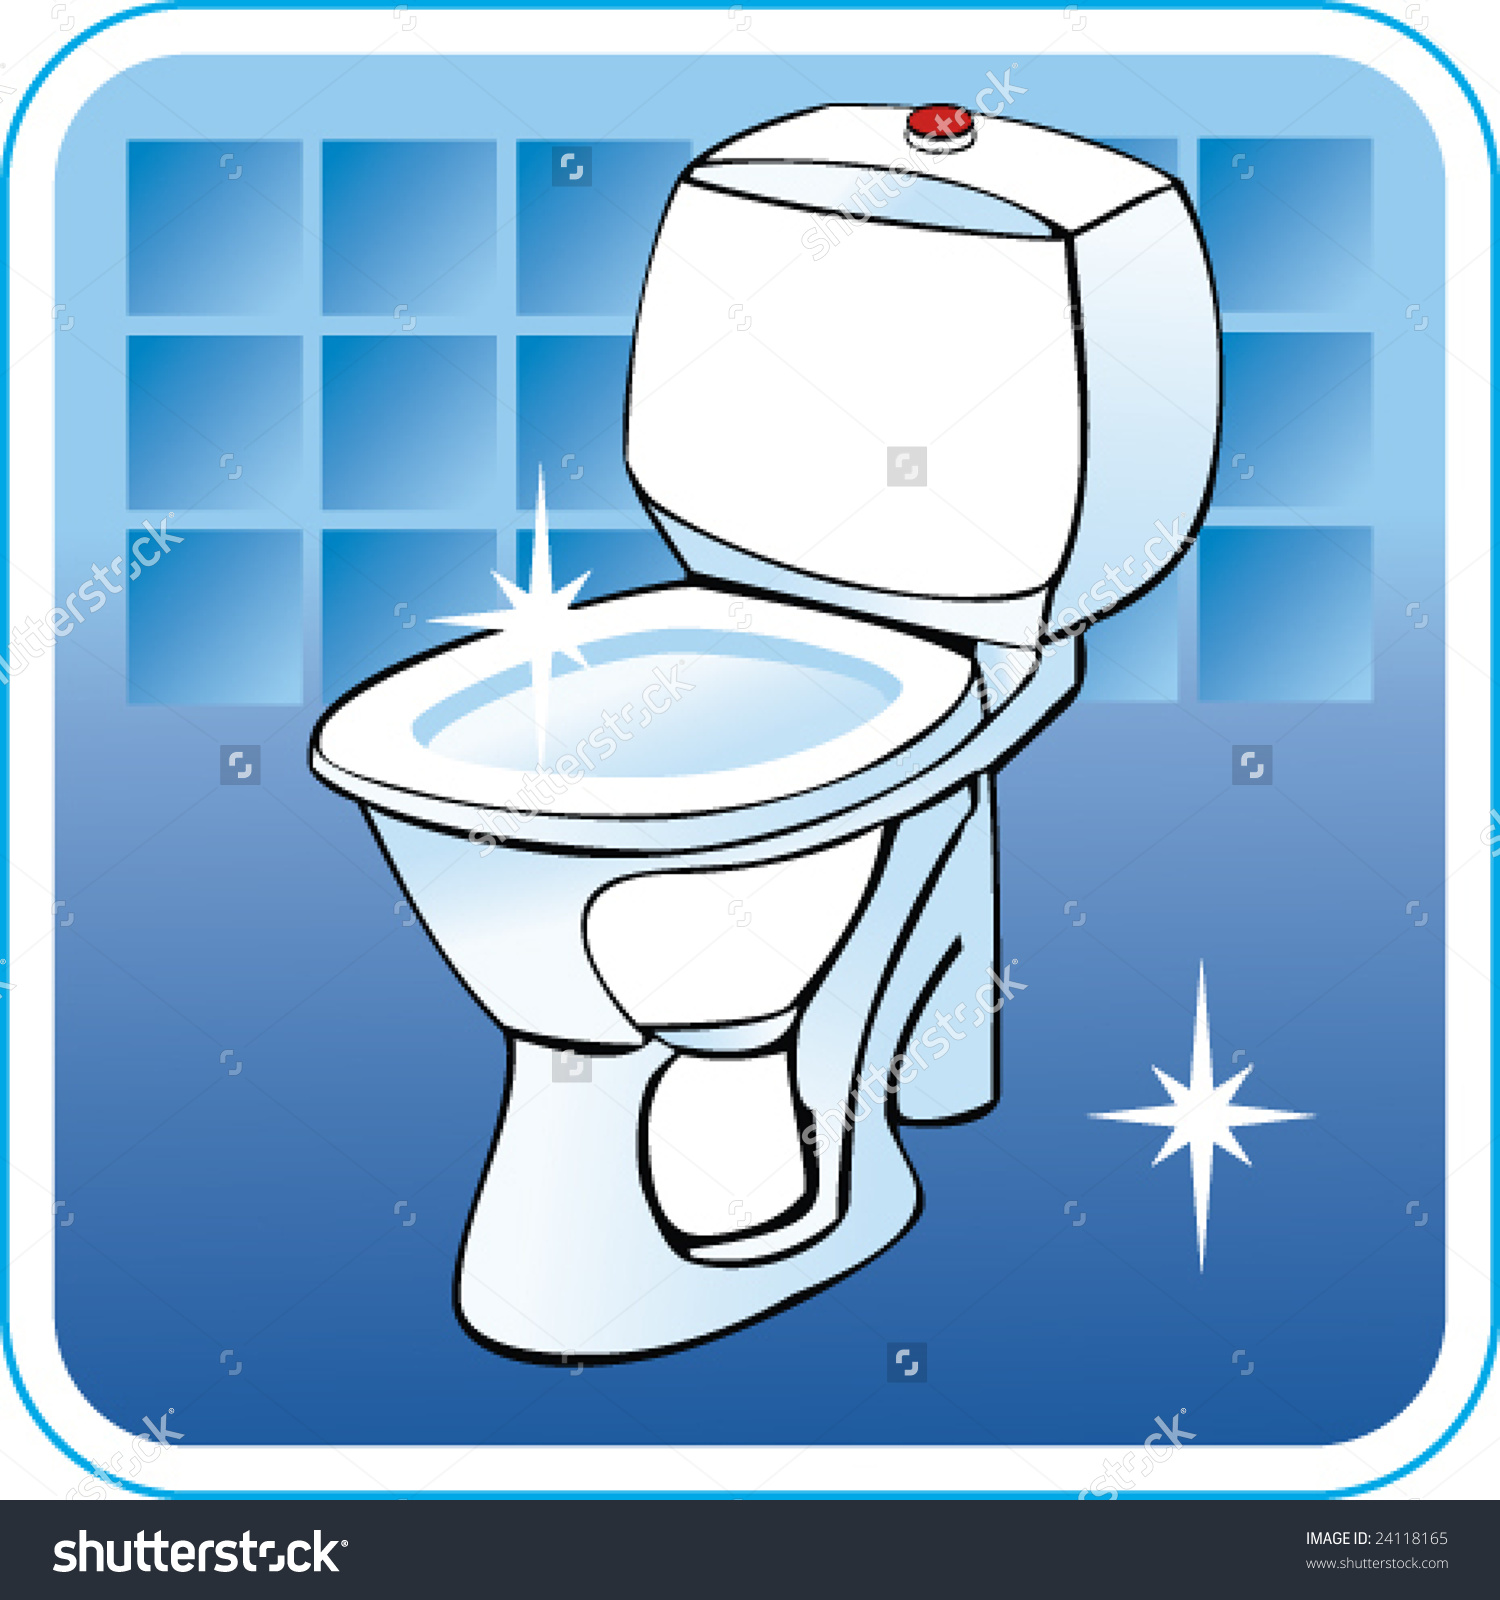 Bathroom clipart comfort room.  collection of clean